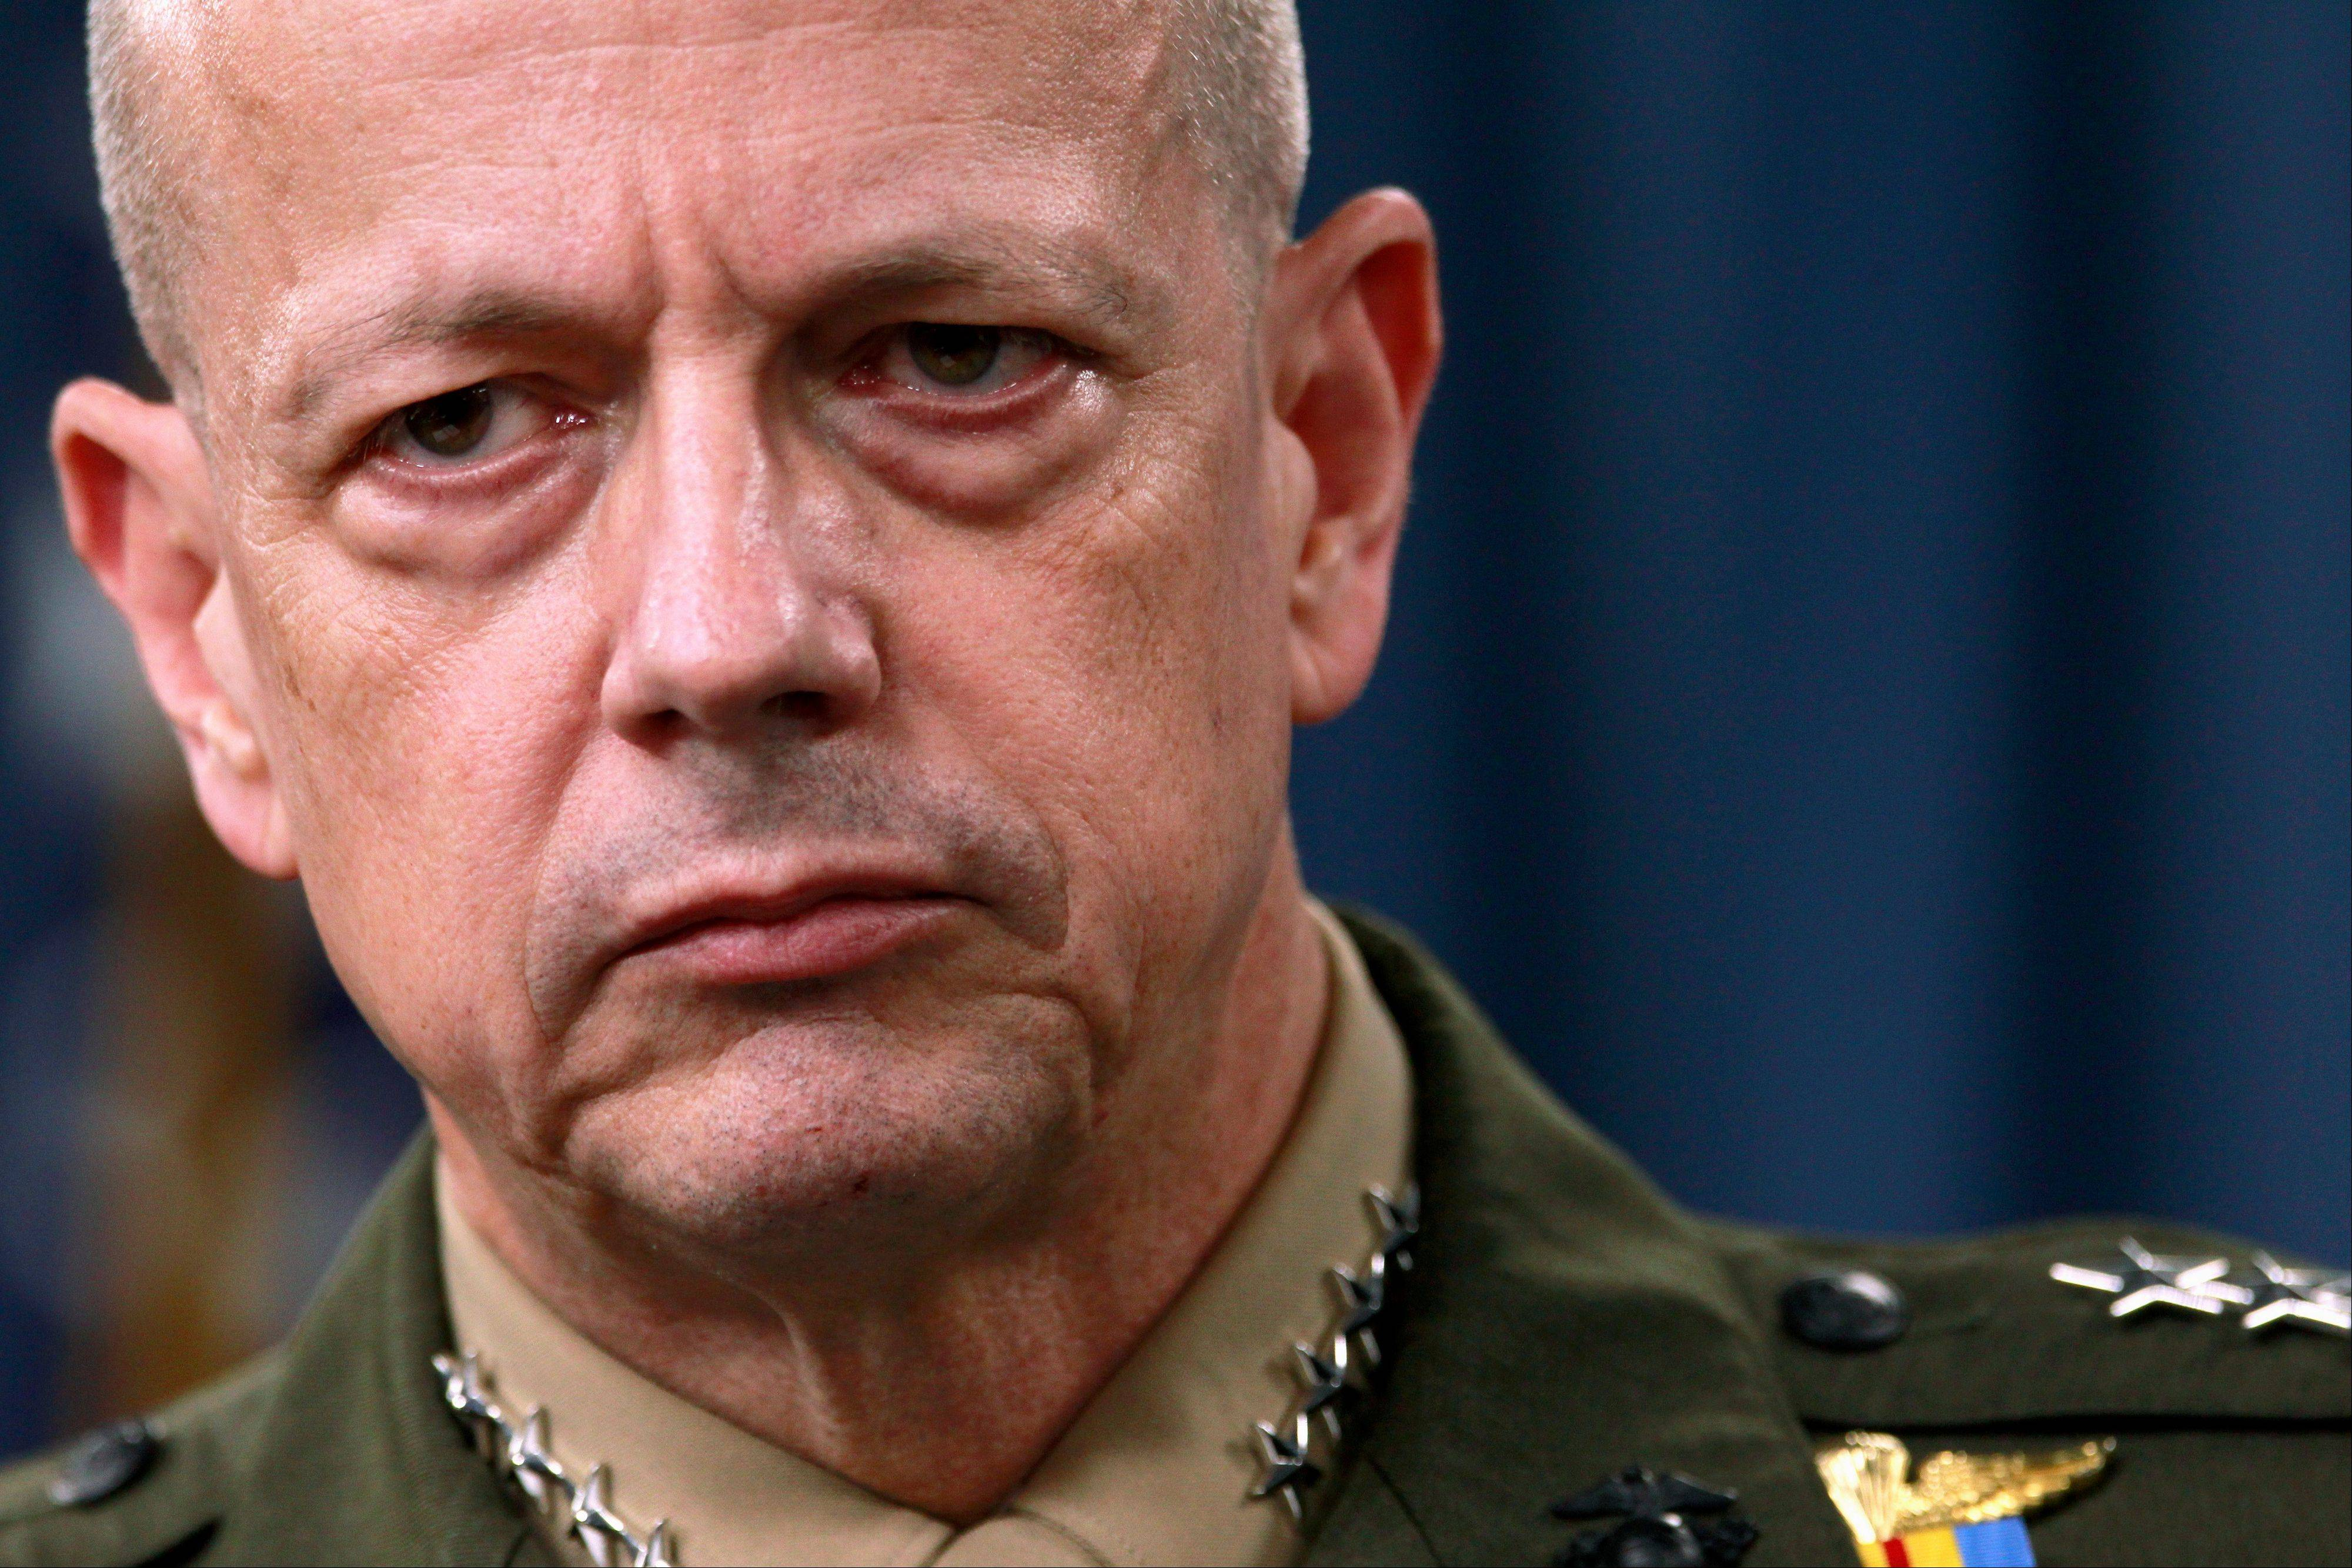 Marine Gen. John Allen, top commander of U.S. and coalition forces in Afghanistan for the past 19 months, said he will retire to care for his ill wife, declining advancement to the post of supreme allied commander in Europe.